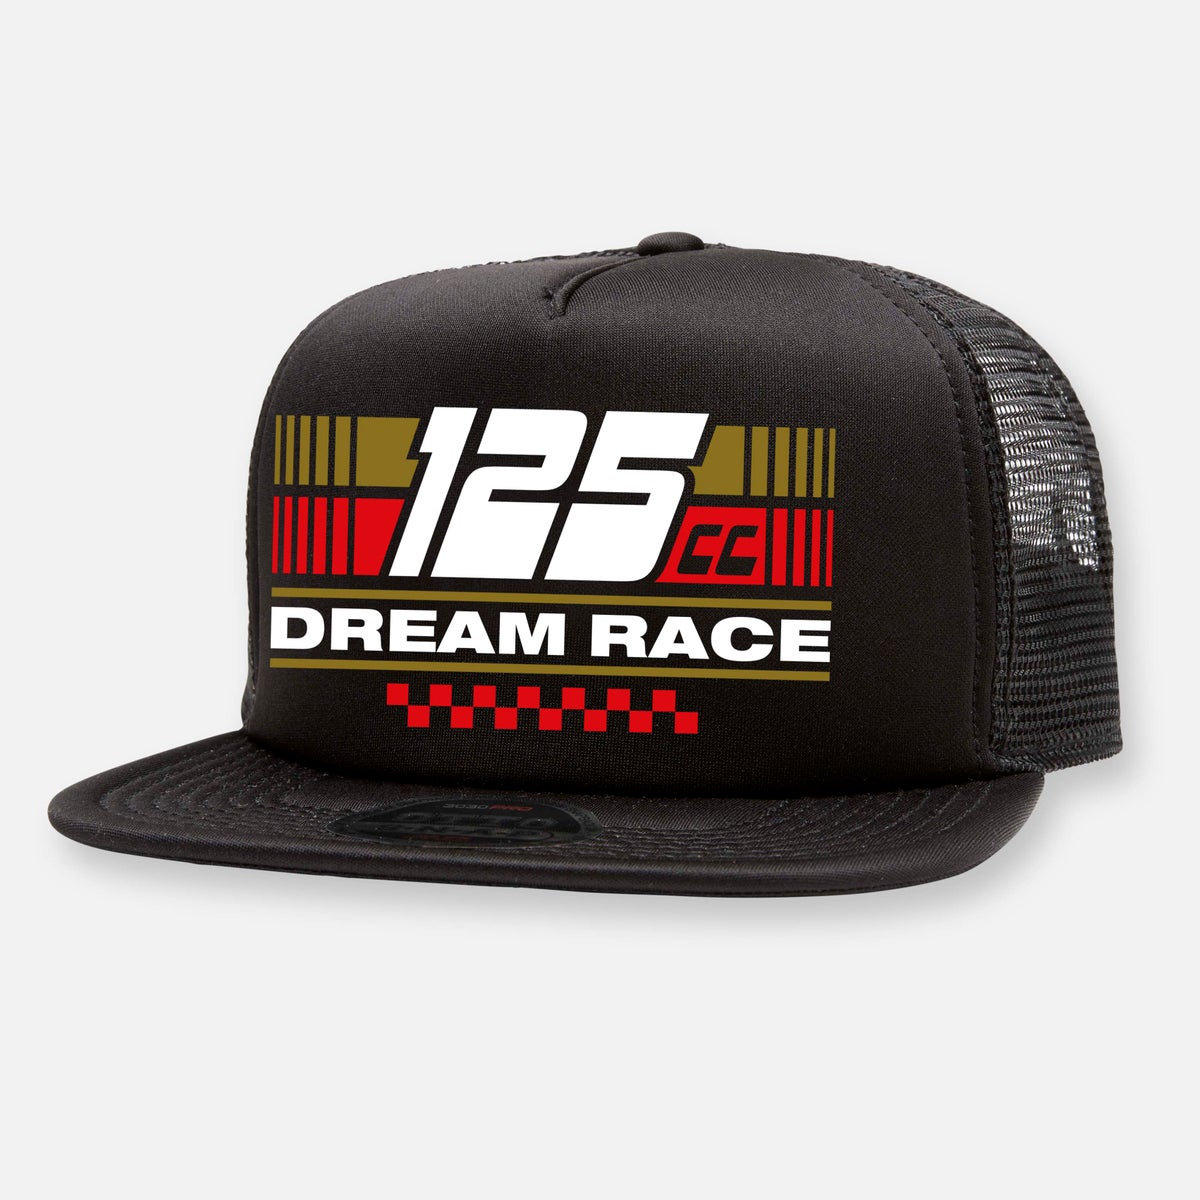 Image of 125 DREAM RACE HAT COLLECTION 1